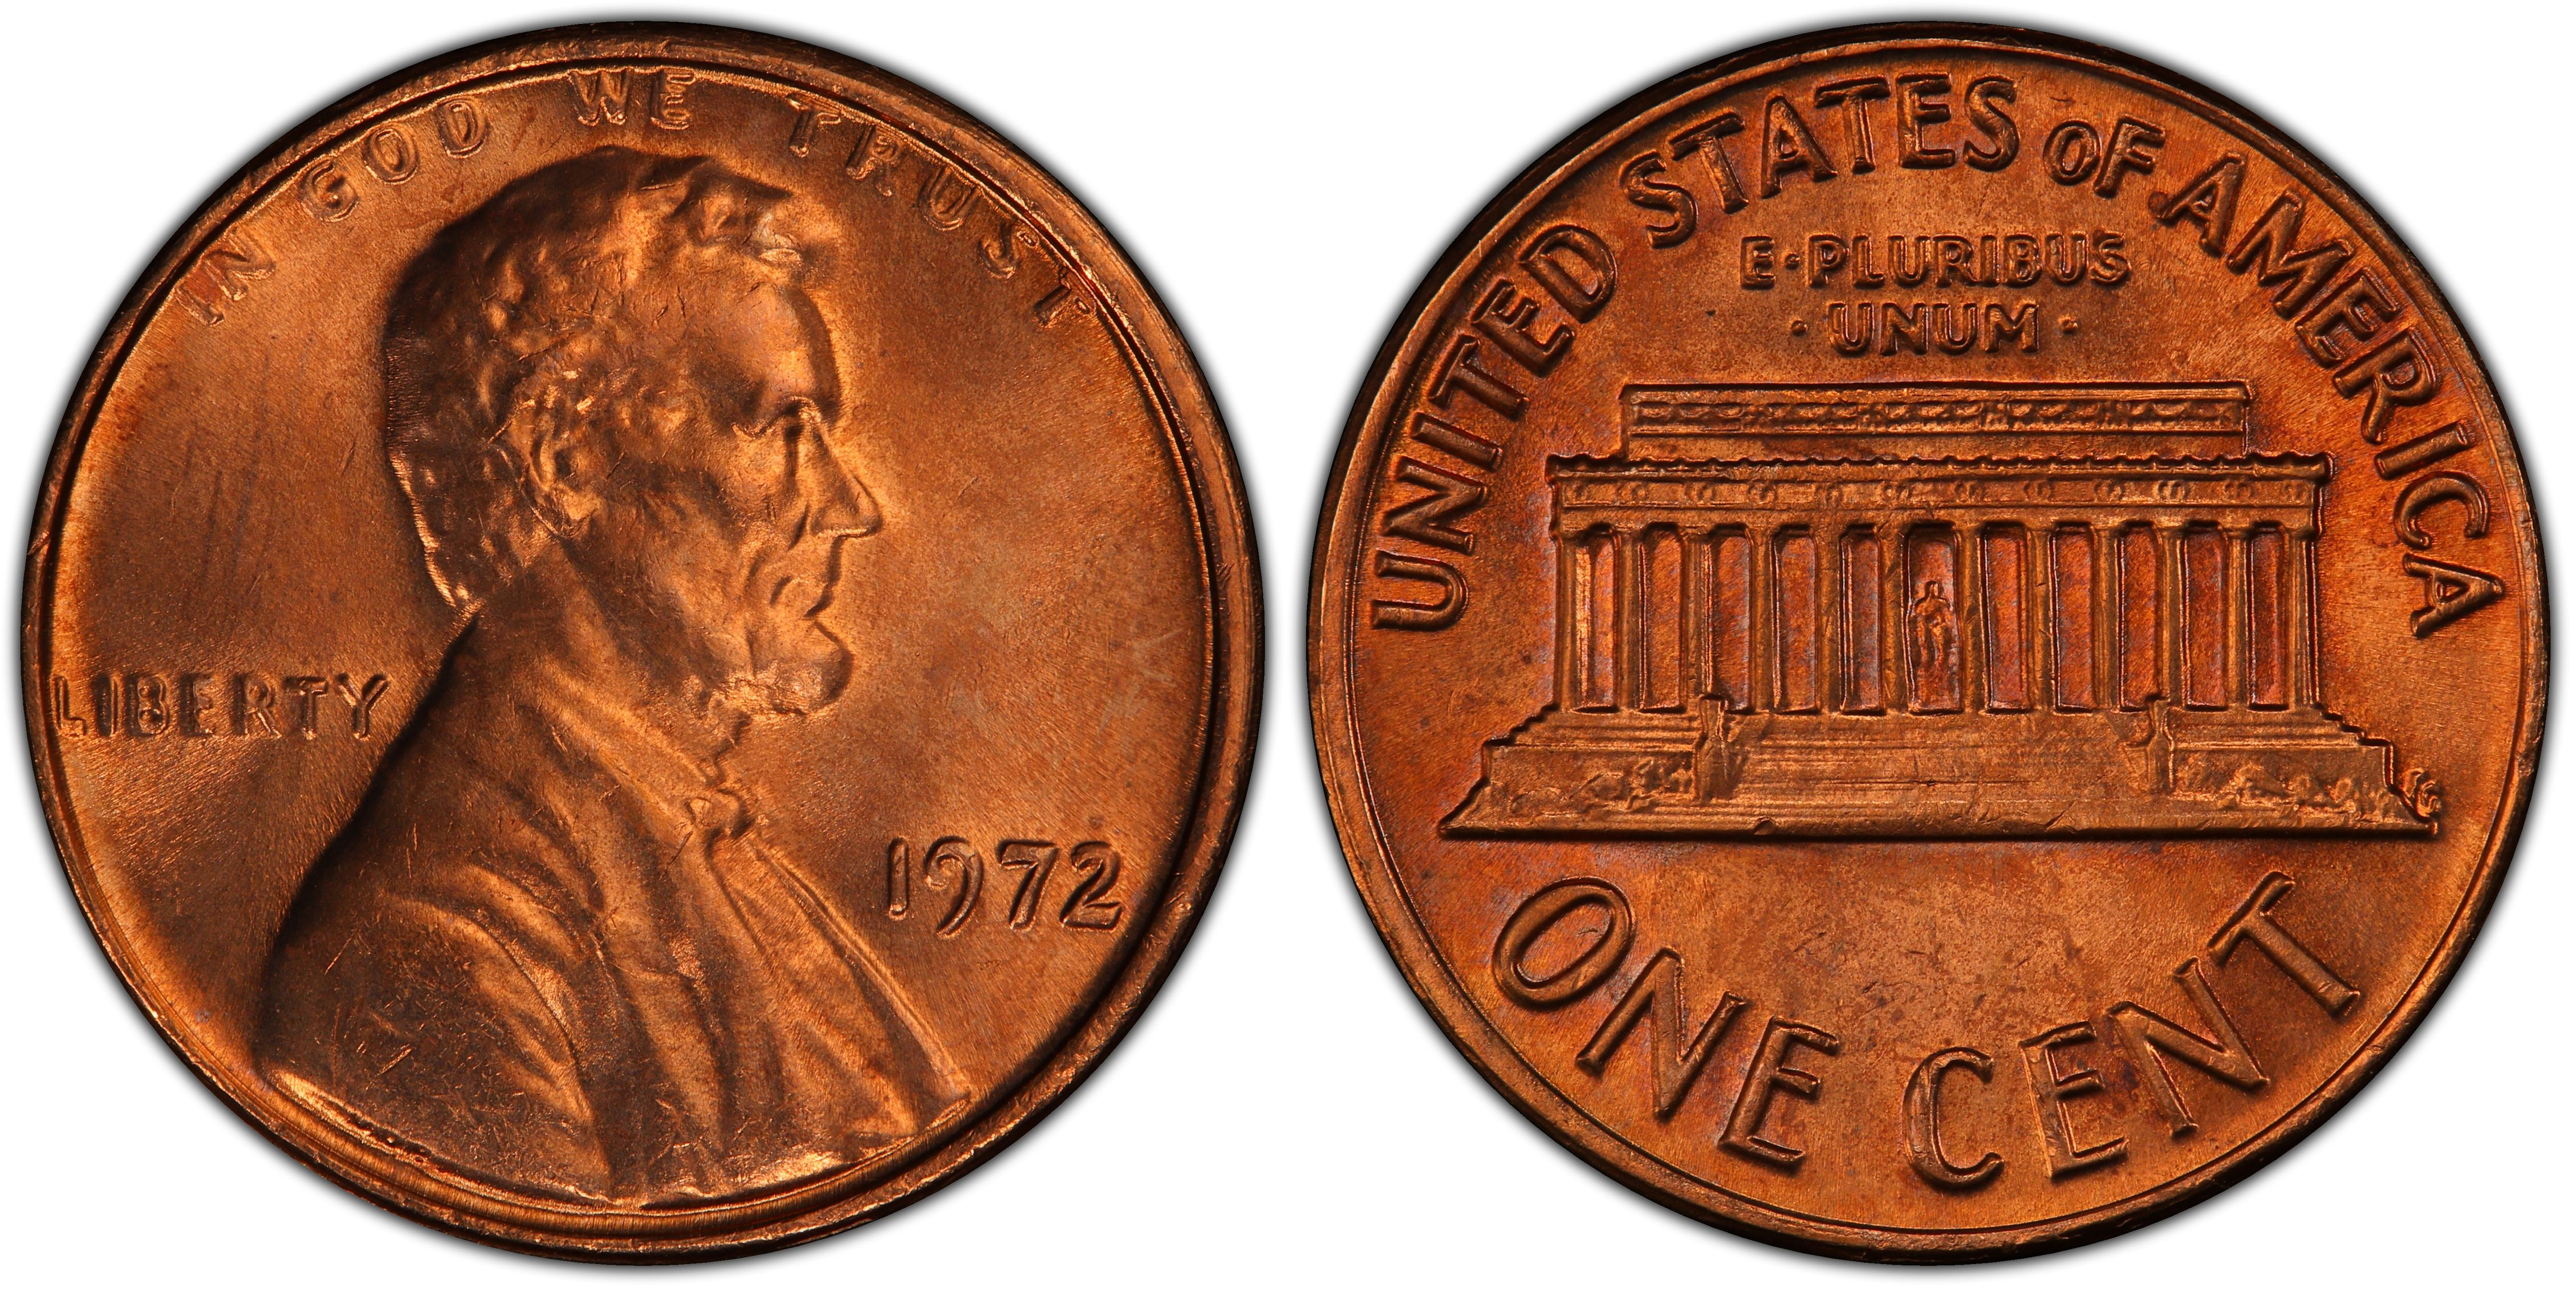 1972 Lincoln Memorial One Cent PCGS MS66RD